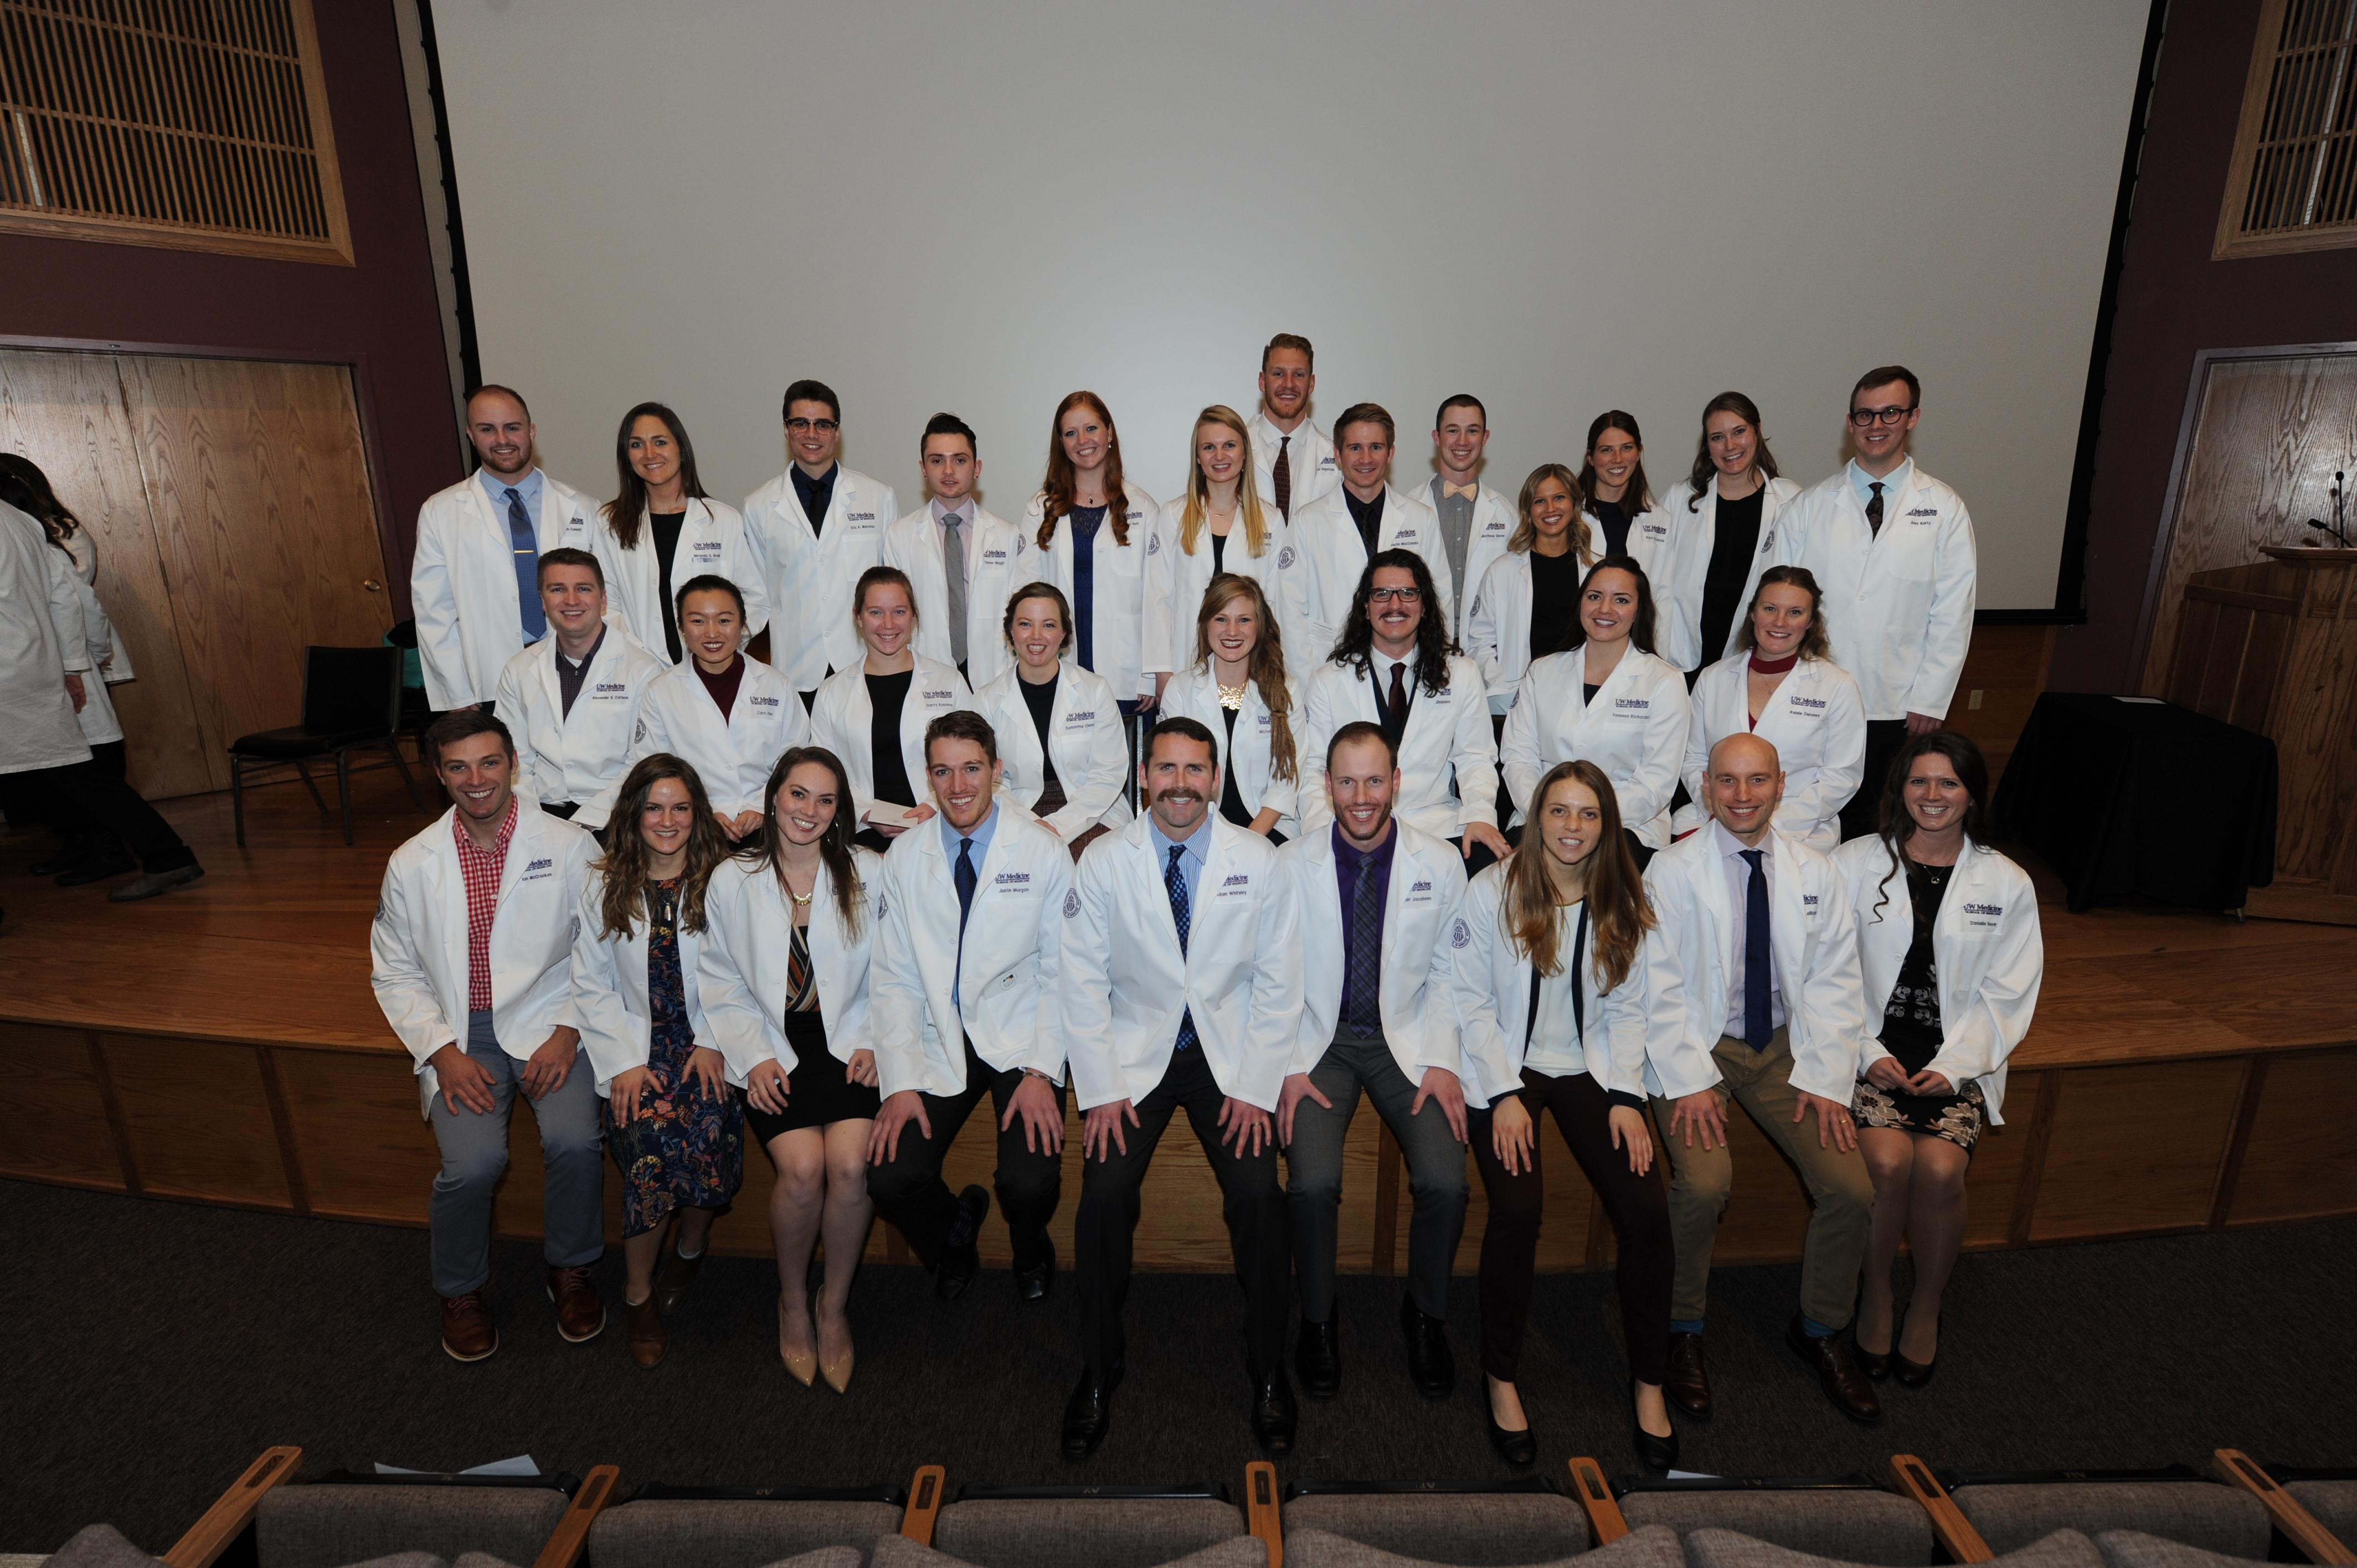 The E17 students received their second white coat to mark transition from the Foundations Phase to the Clinical Phase in December 2018